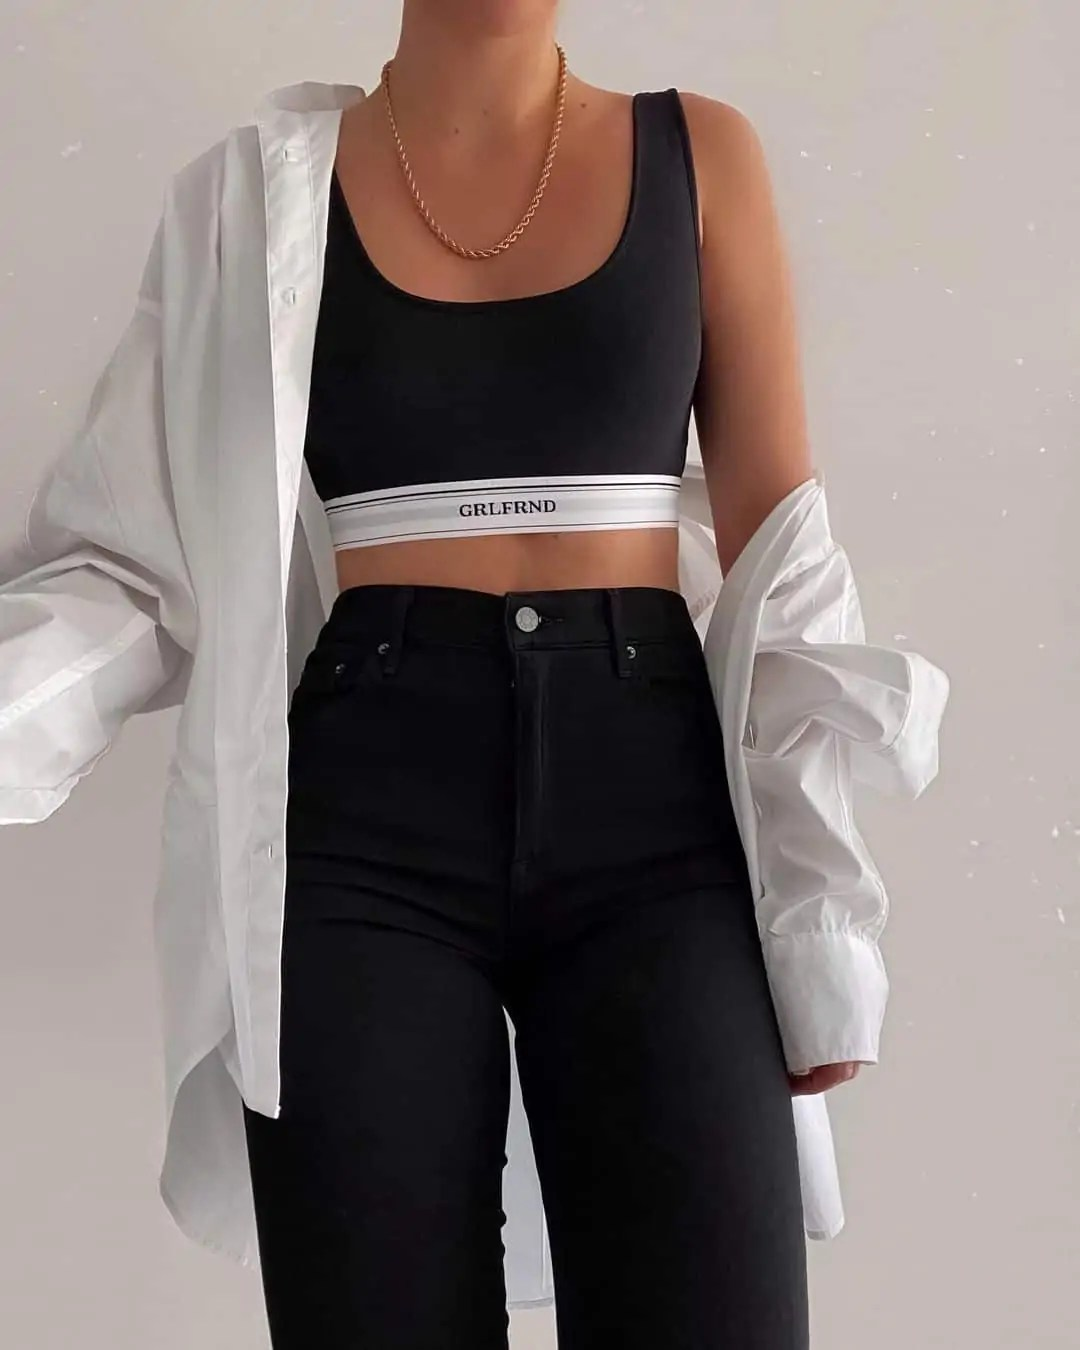 100+ Outfits to Inspire your next shopping haul 85